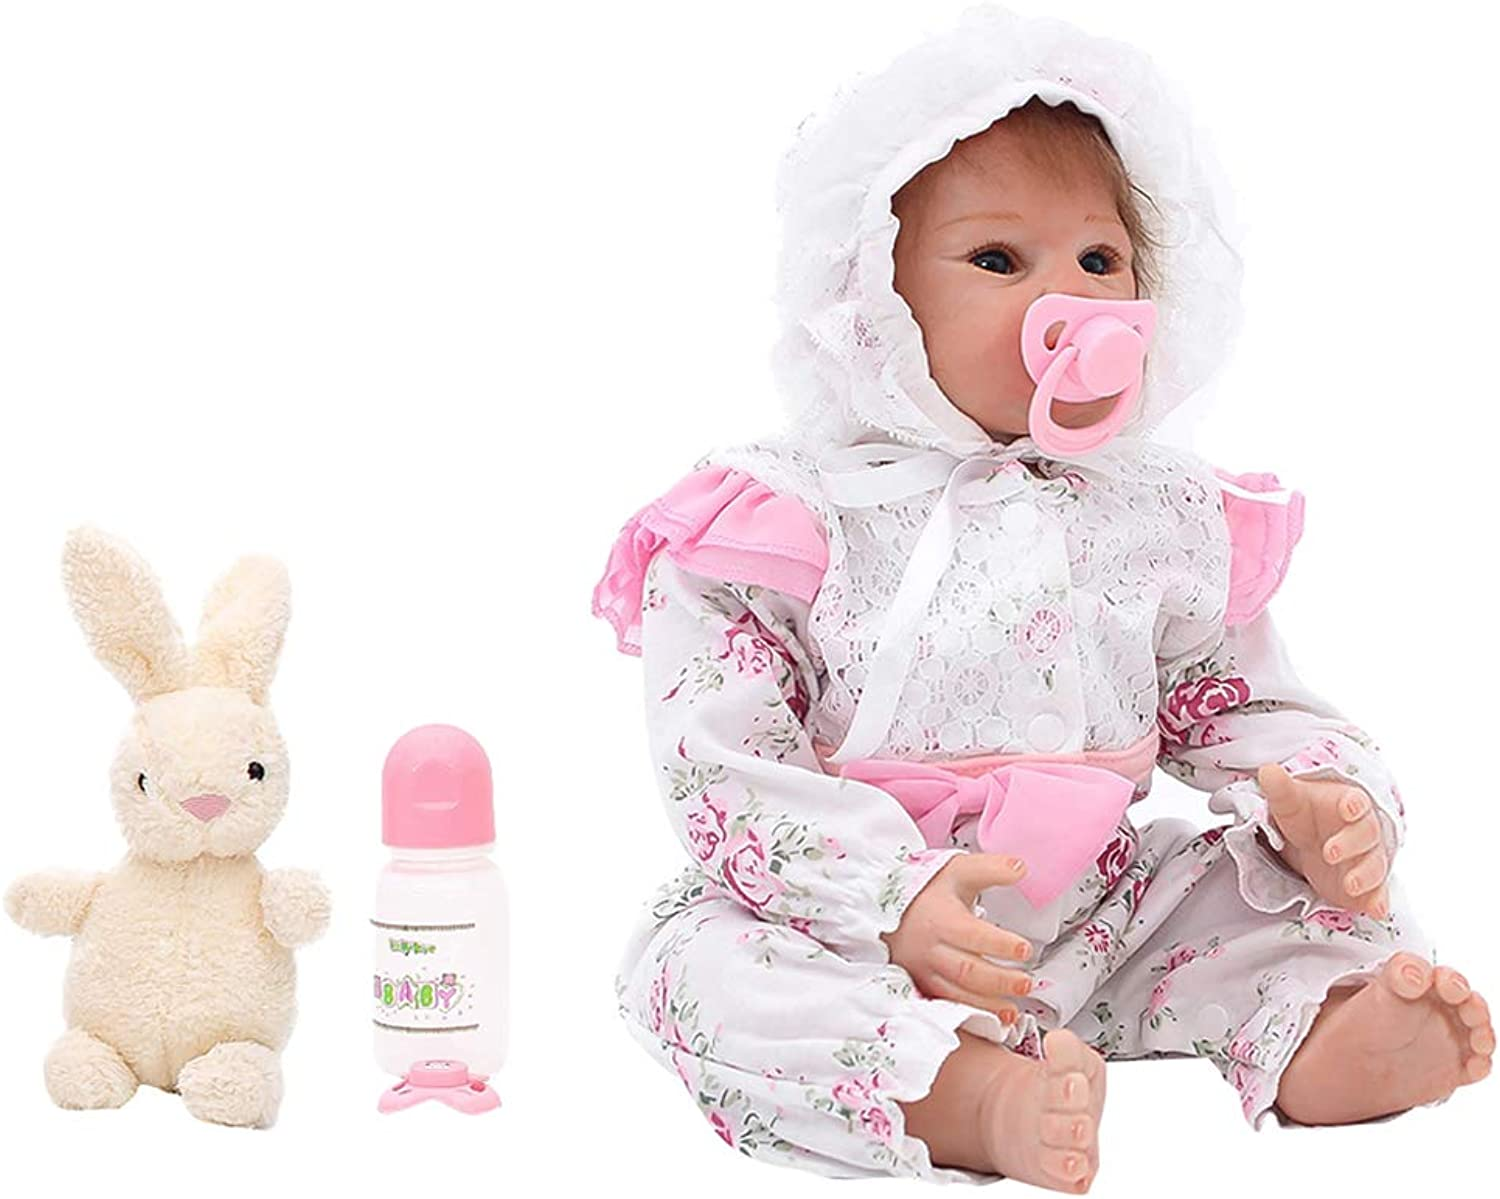 Prettyia 50cm Full Body Soft Vinyl Reborn Newborn Girl Dolls with Floral Clothes Set and Supplies